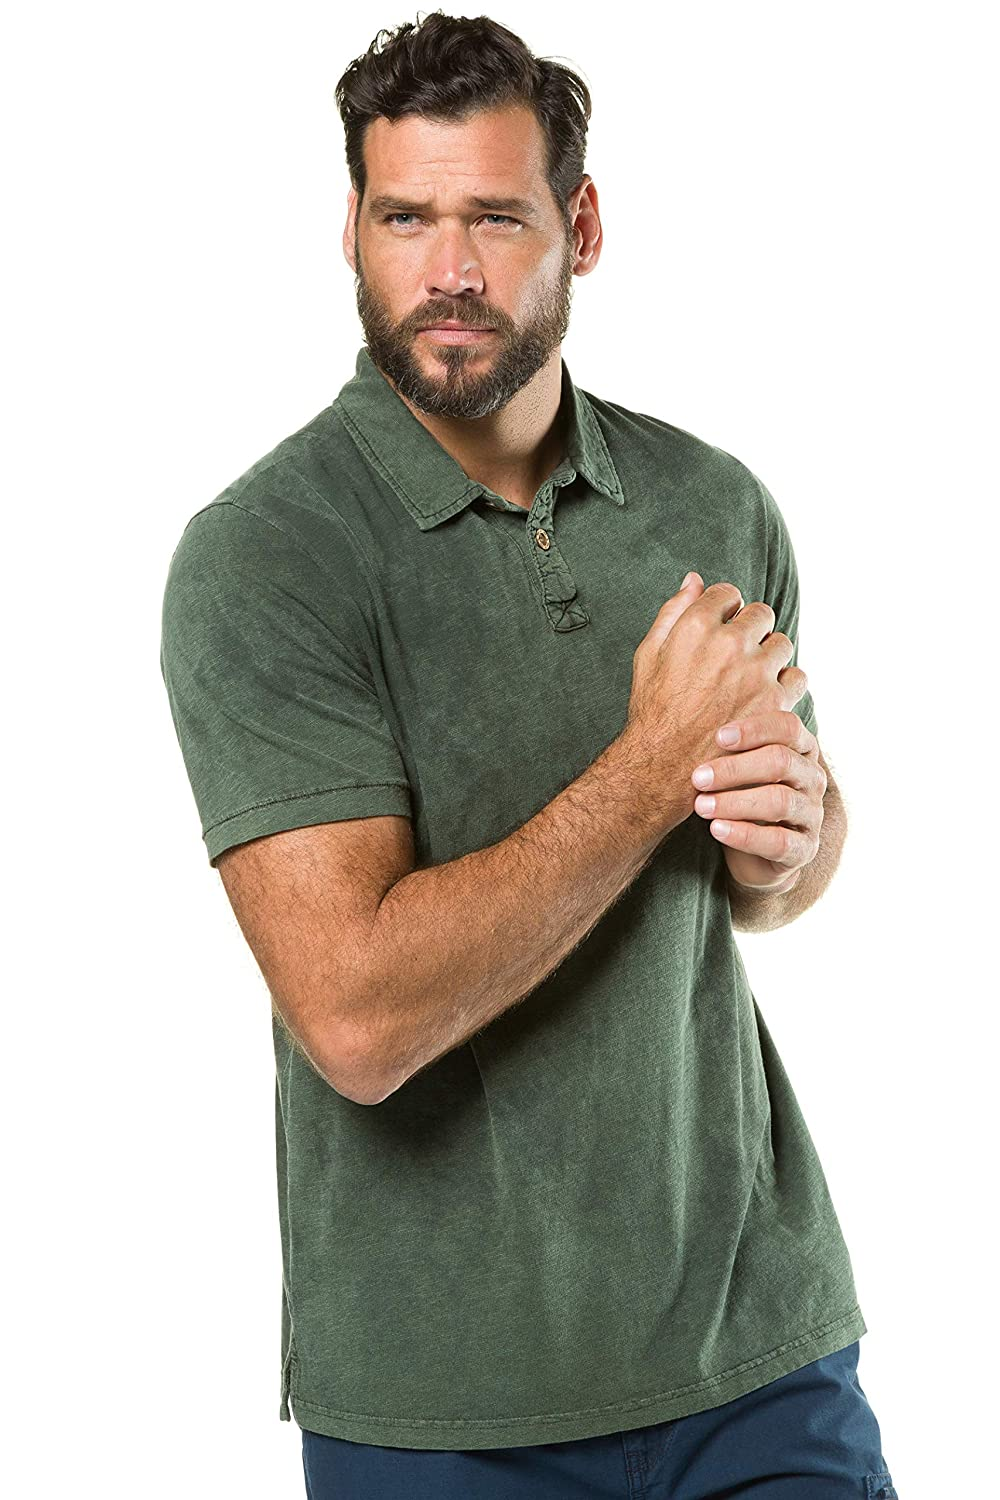 a370a30a JP 1880 Men's Big & Tall Vintage Style Polo Shirt 716987 at Amazon Men's  Clothing store: